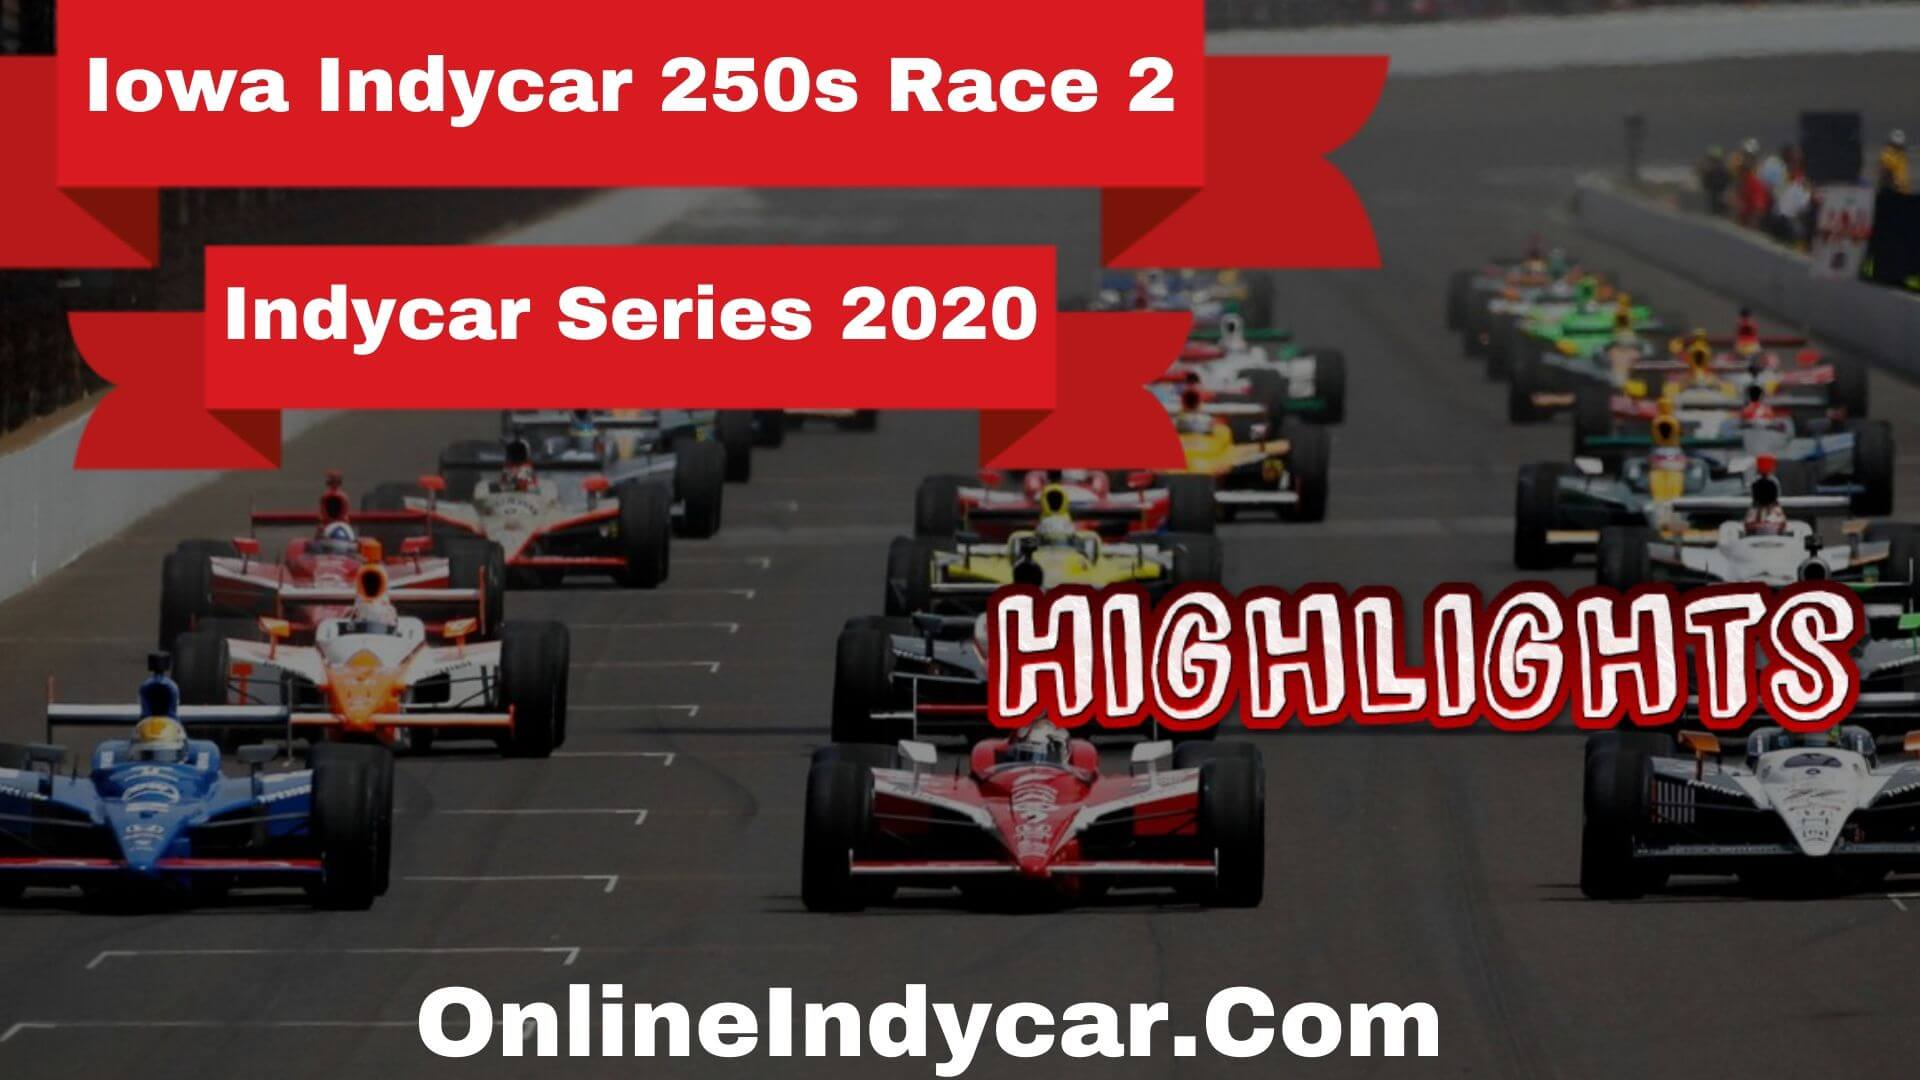 Iowa Indycar 250s Race 2 Indycar Series Highlights 2020